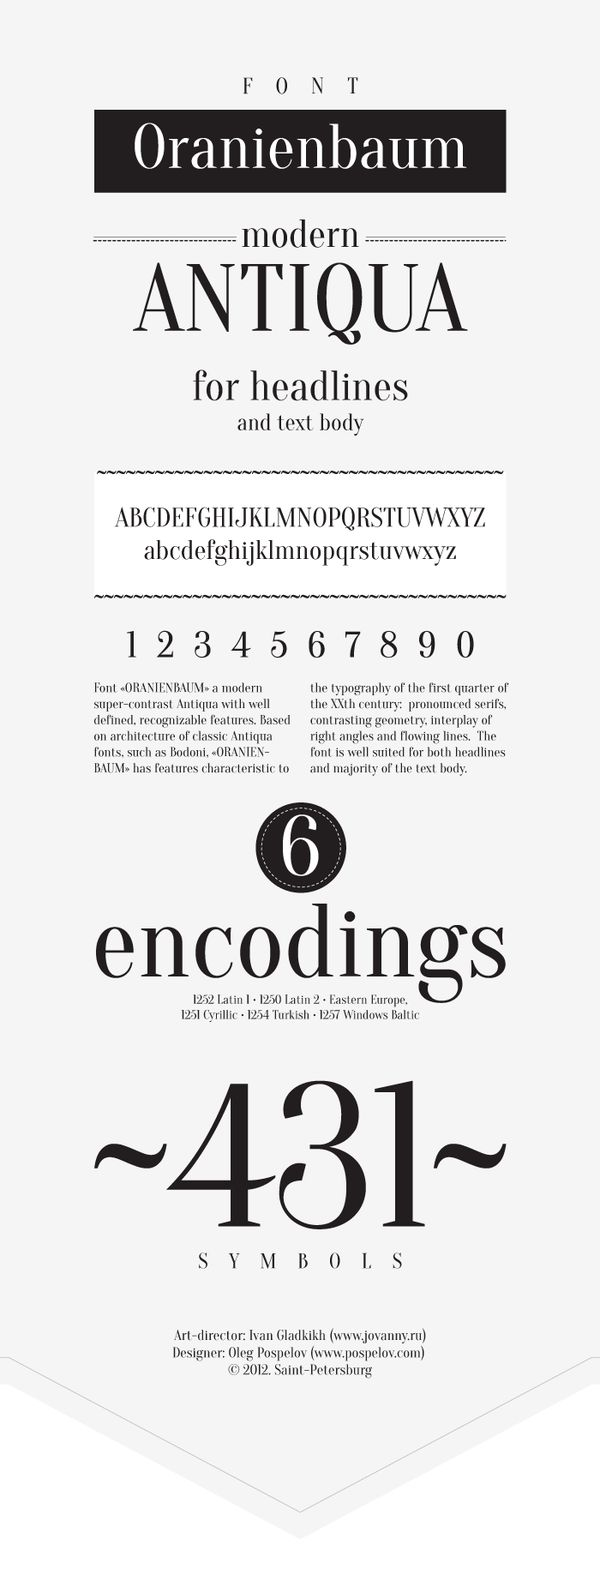 Best sellers premium fonts page 248 urban fonts - 248 Best Free Fonts Images On Pinterest Font Family Typography Fonts And Lettering